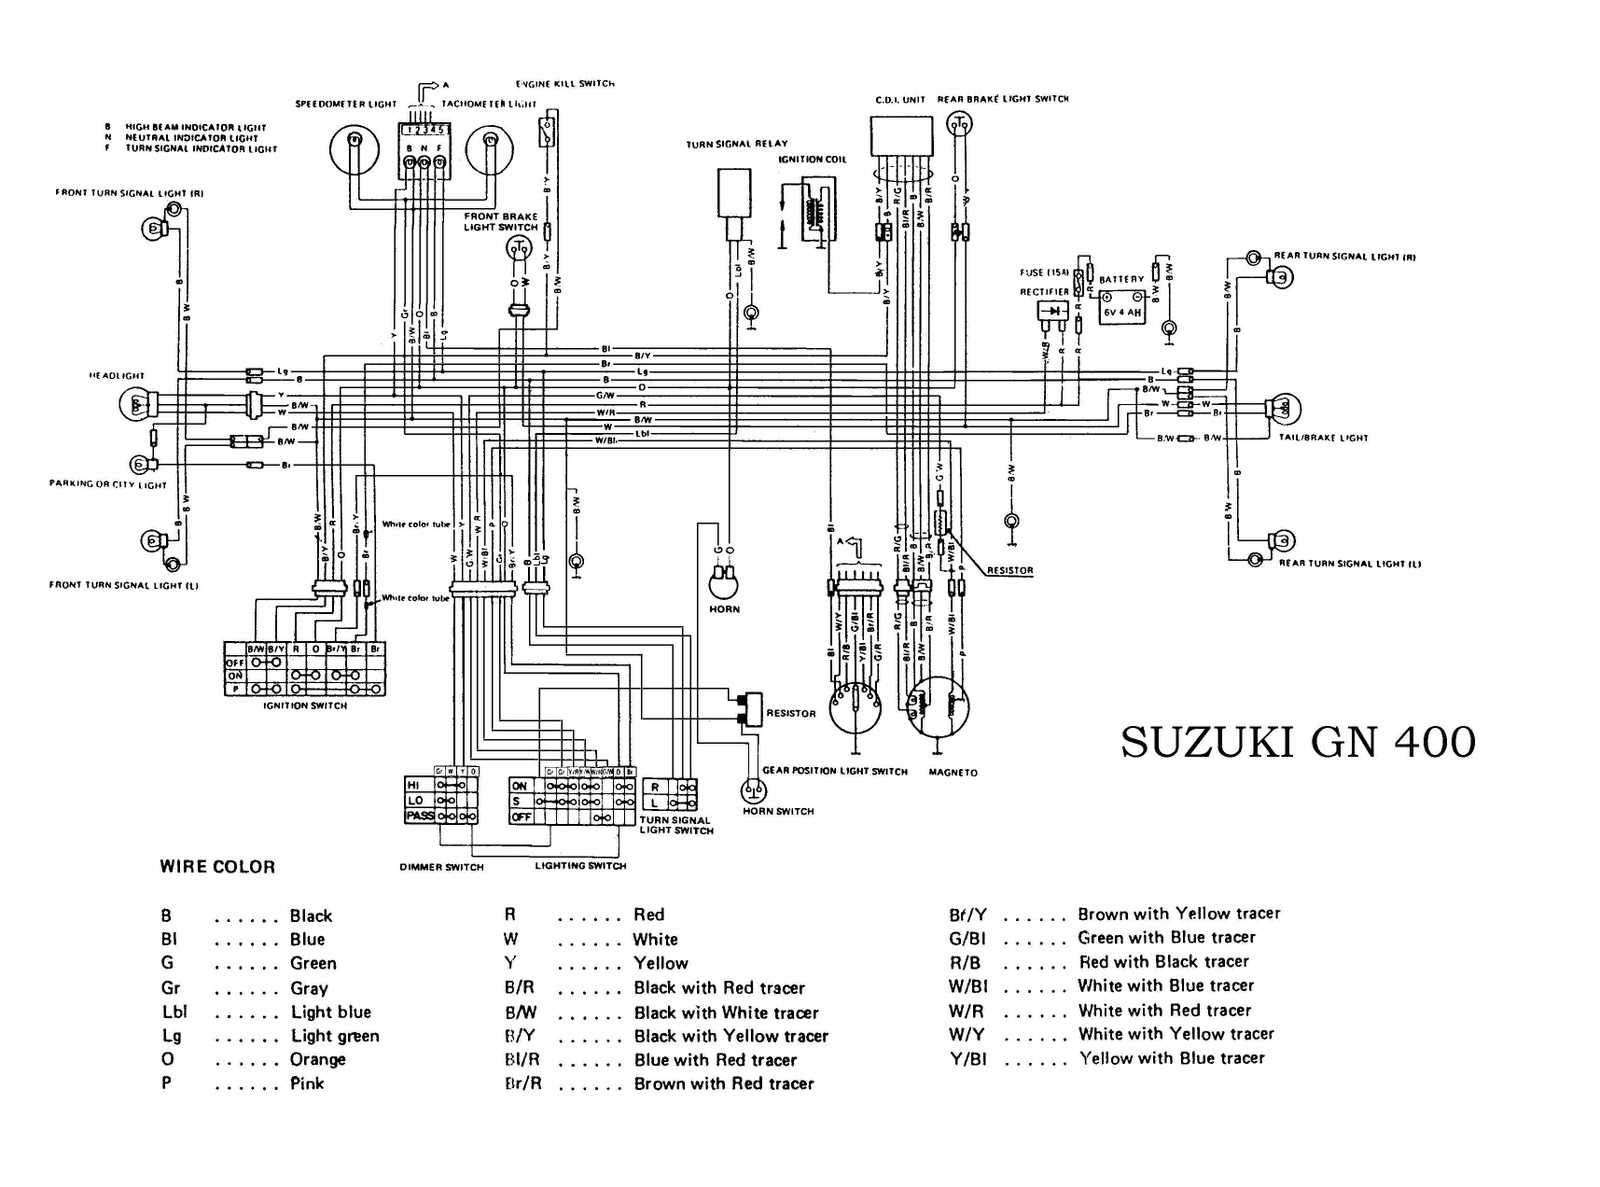 Suzuki+GN400+Electrical+Wiring+Diagram e67 wiring diagram smart car diagrams \u2022 wiring diagrams j squared co 6l80e trans modules wiring diagram at soozxer.org